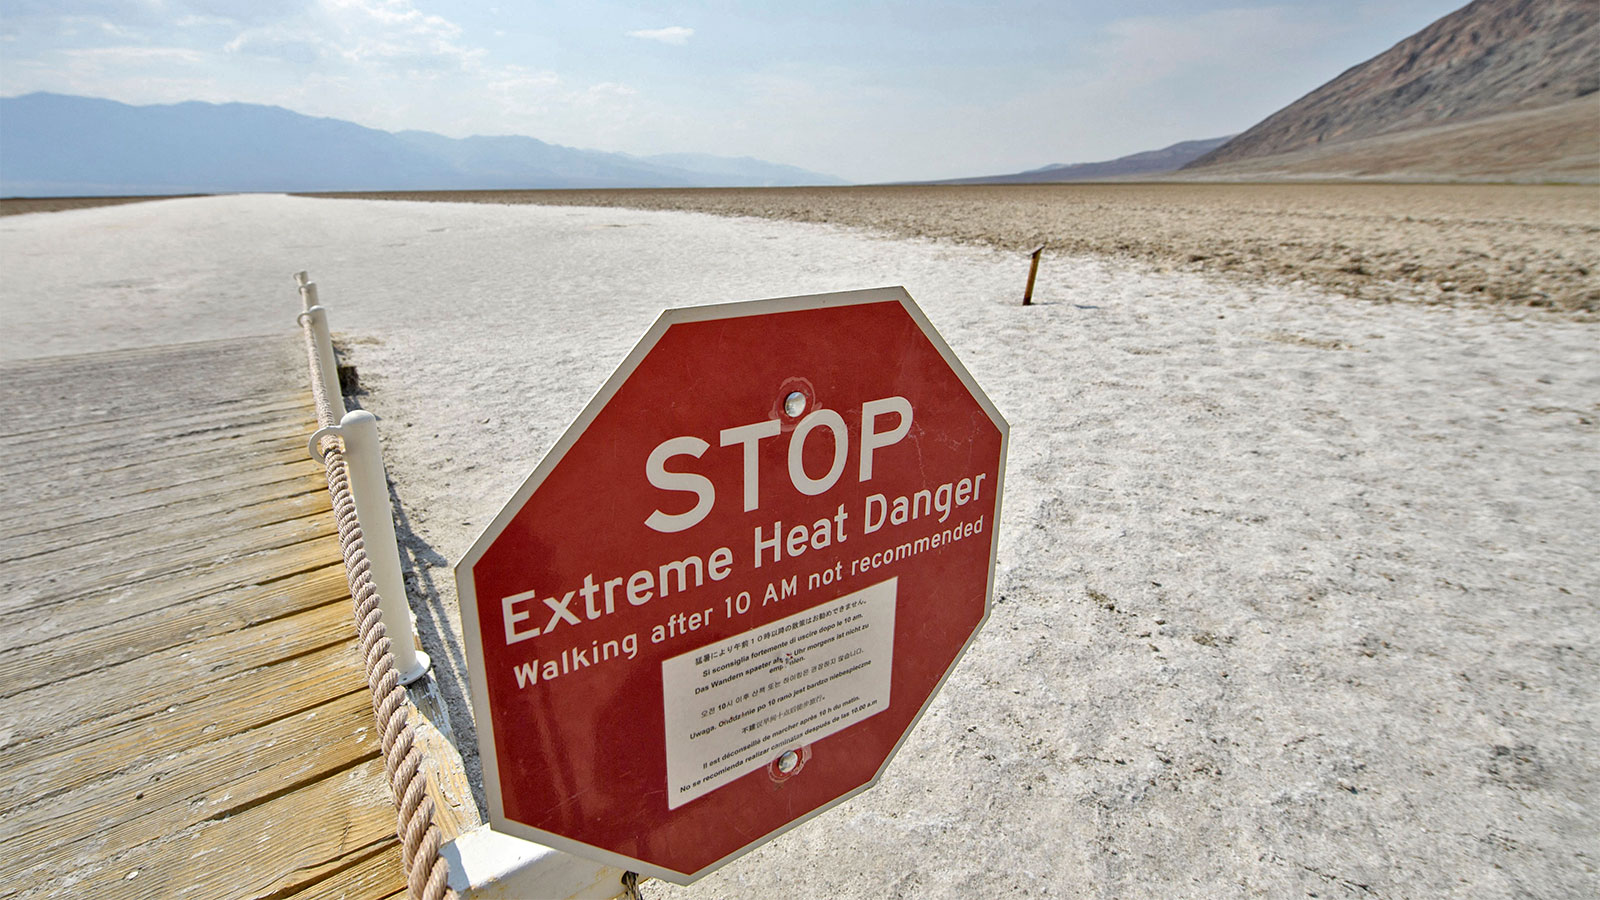 A stop sign warning of extreme heat danger at Death Valley National Park